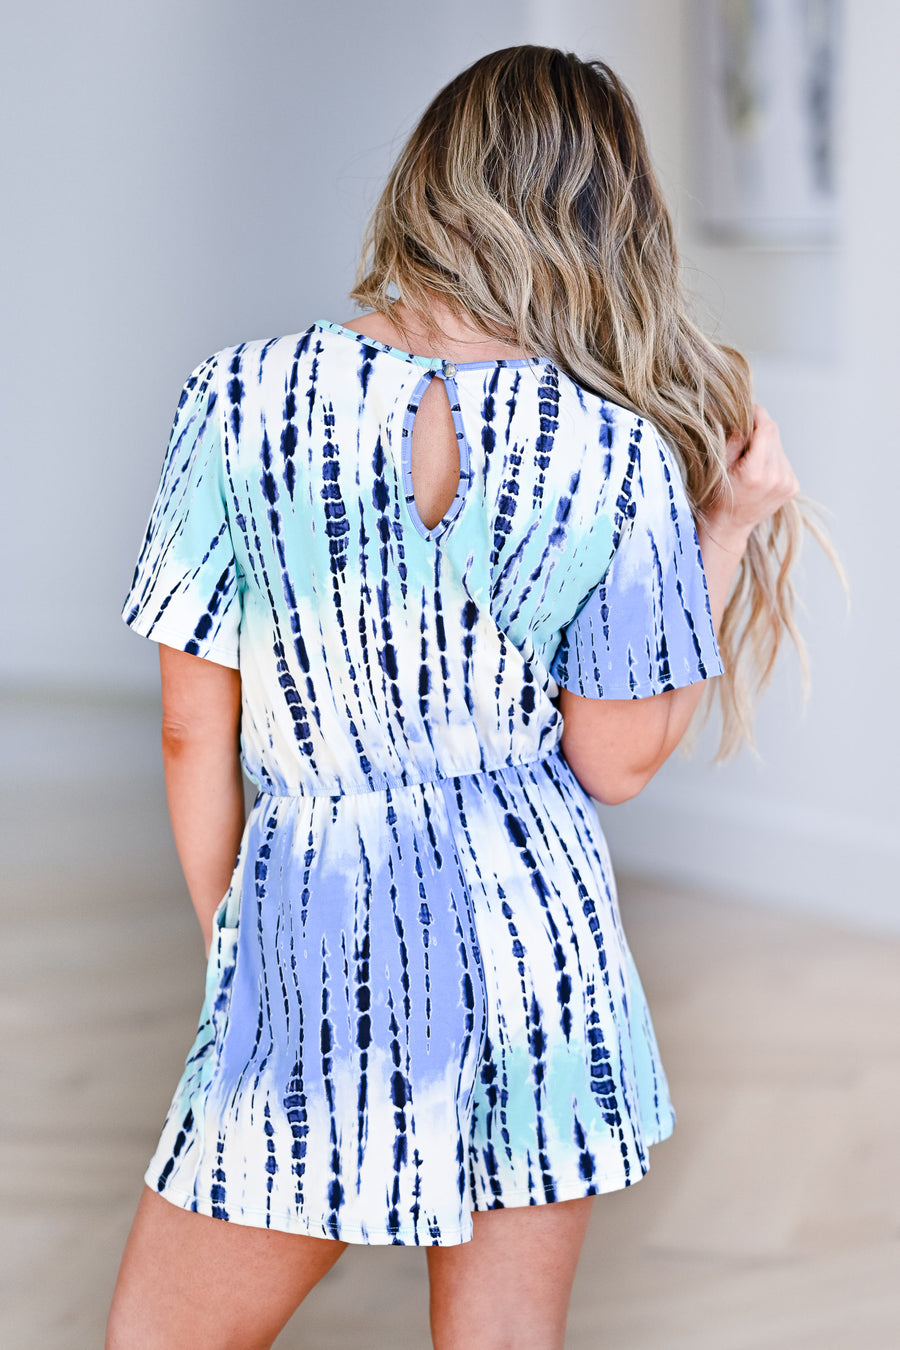 Cool Breeze Tie Dye Knit Romper - Blue womens trendy tie dye tie front short sleeve detail closet candy front